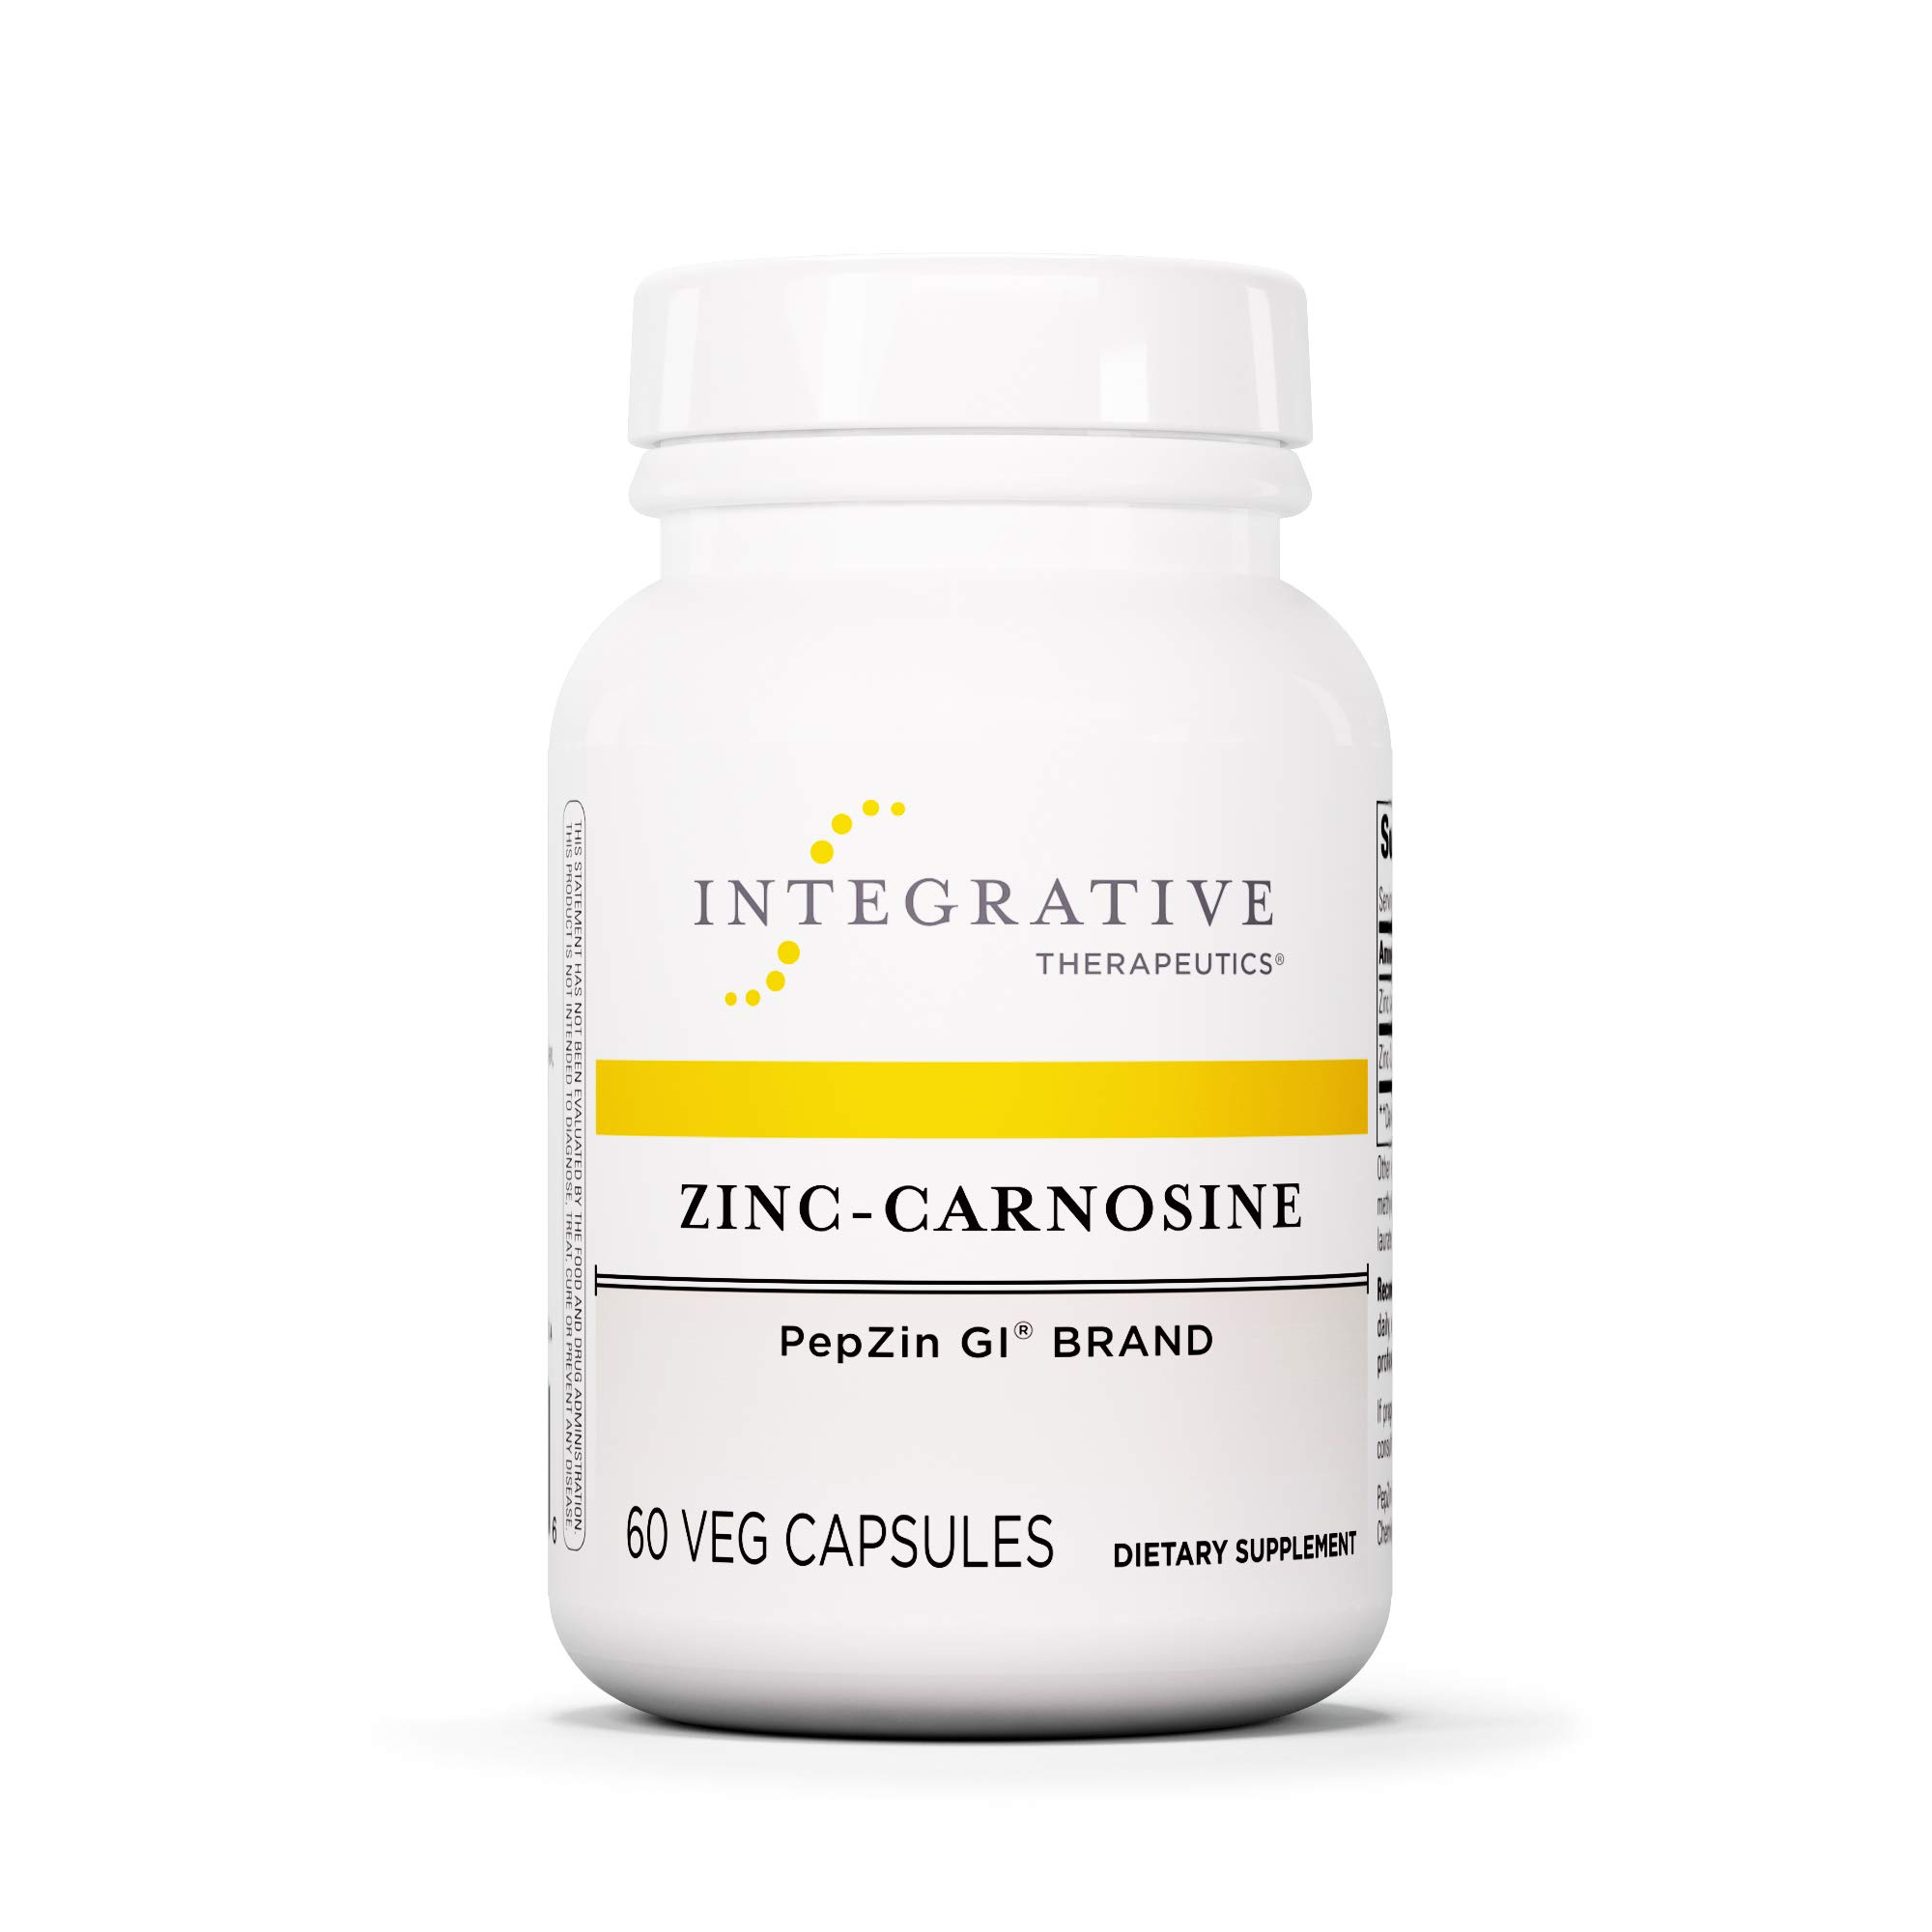 Integrative Therapeutics - Zinc-Carnosine - PepZin GI Brand - Supports Healthy Gastrointestinal Lining & Relieve Gastric Discomfort - 60 Capsules by Integrative Therapeutics